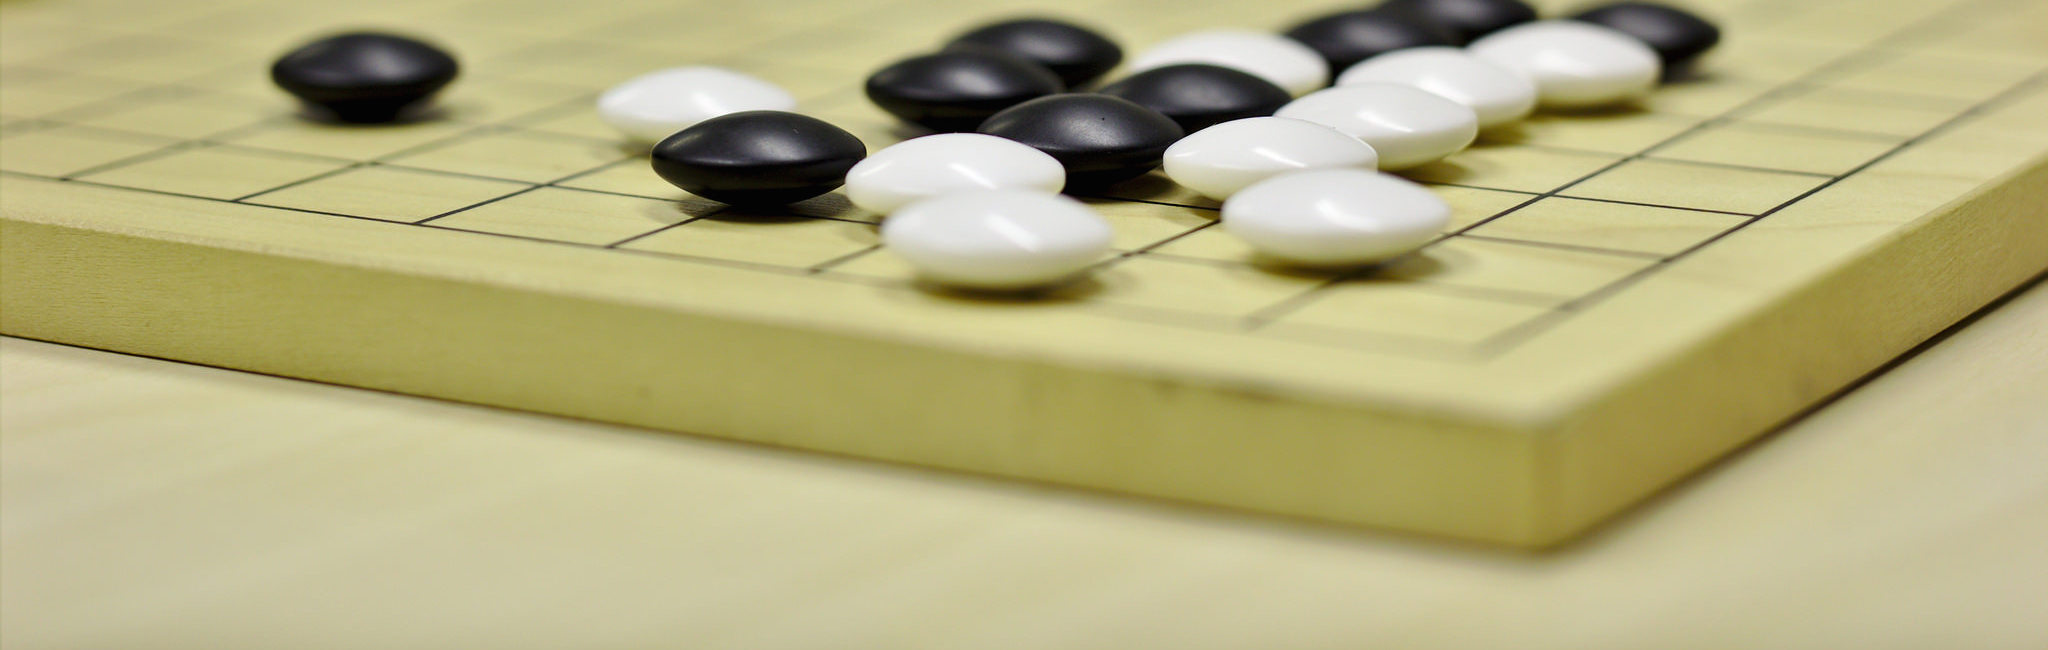 God of Go: The Rise of Superhuman Intelligence Without Human Knowledge